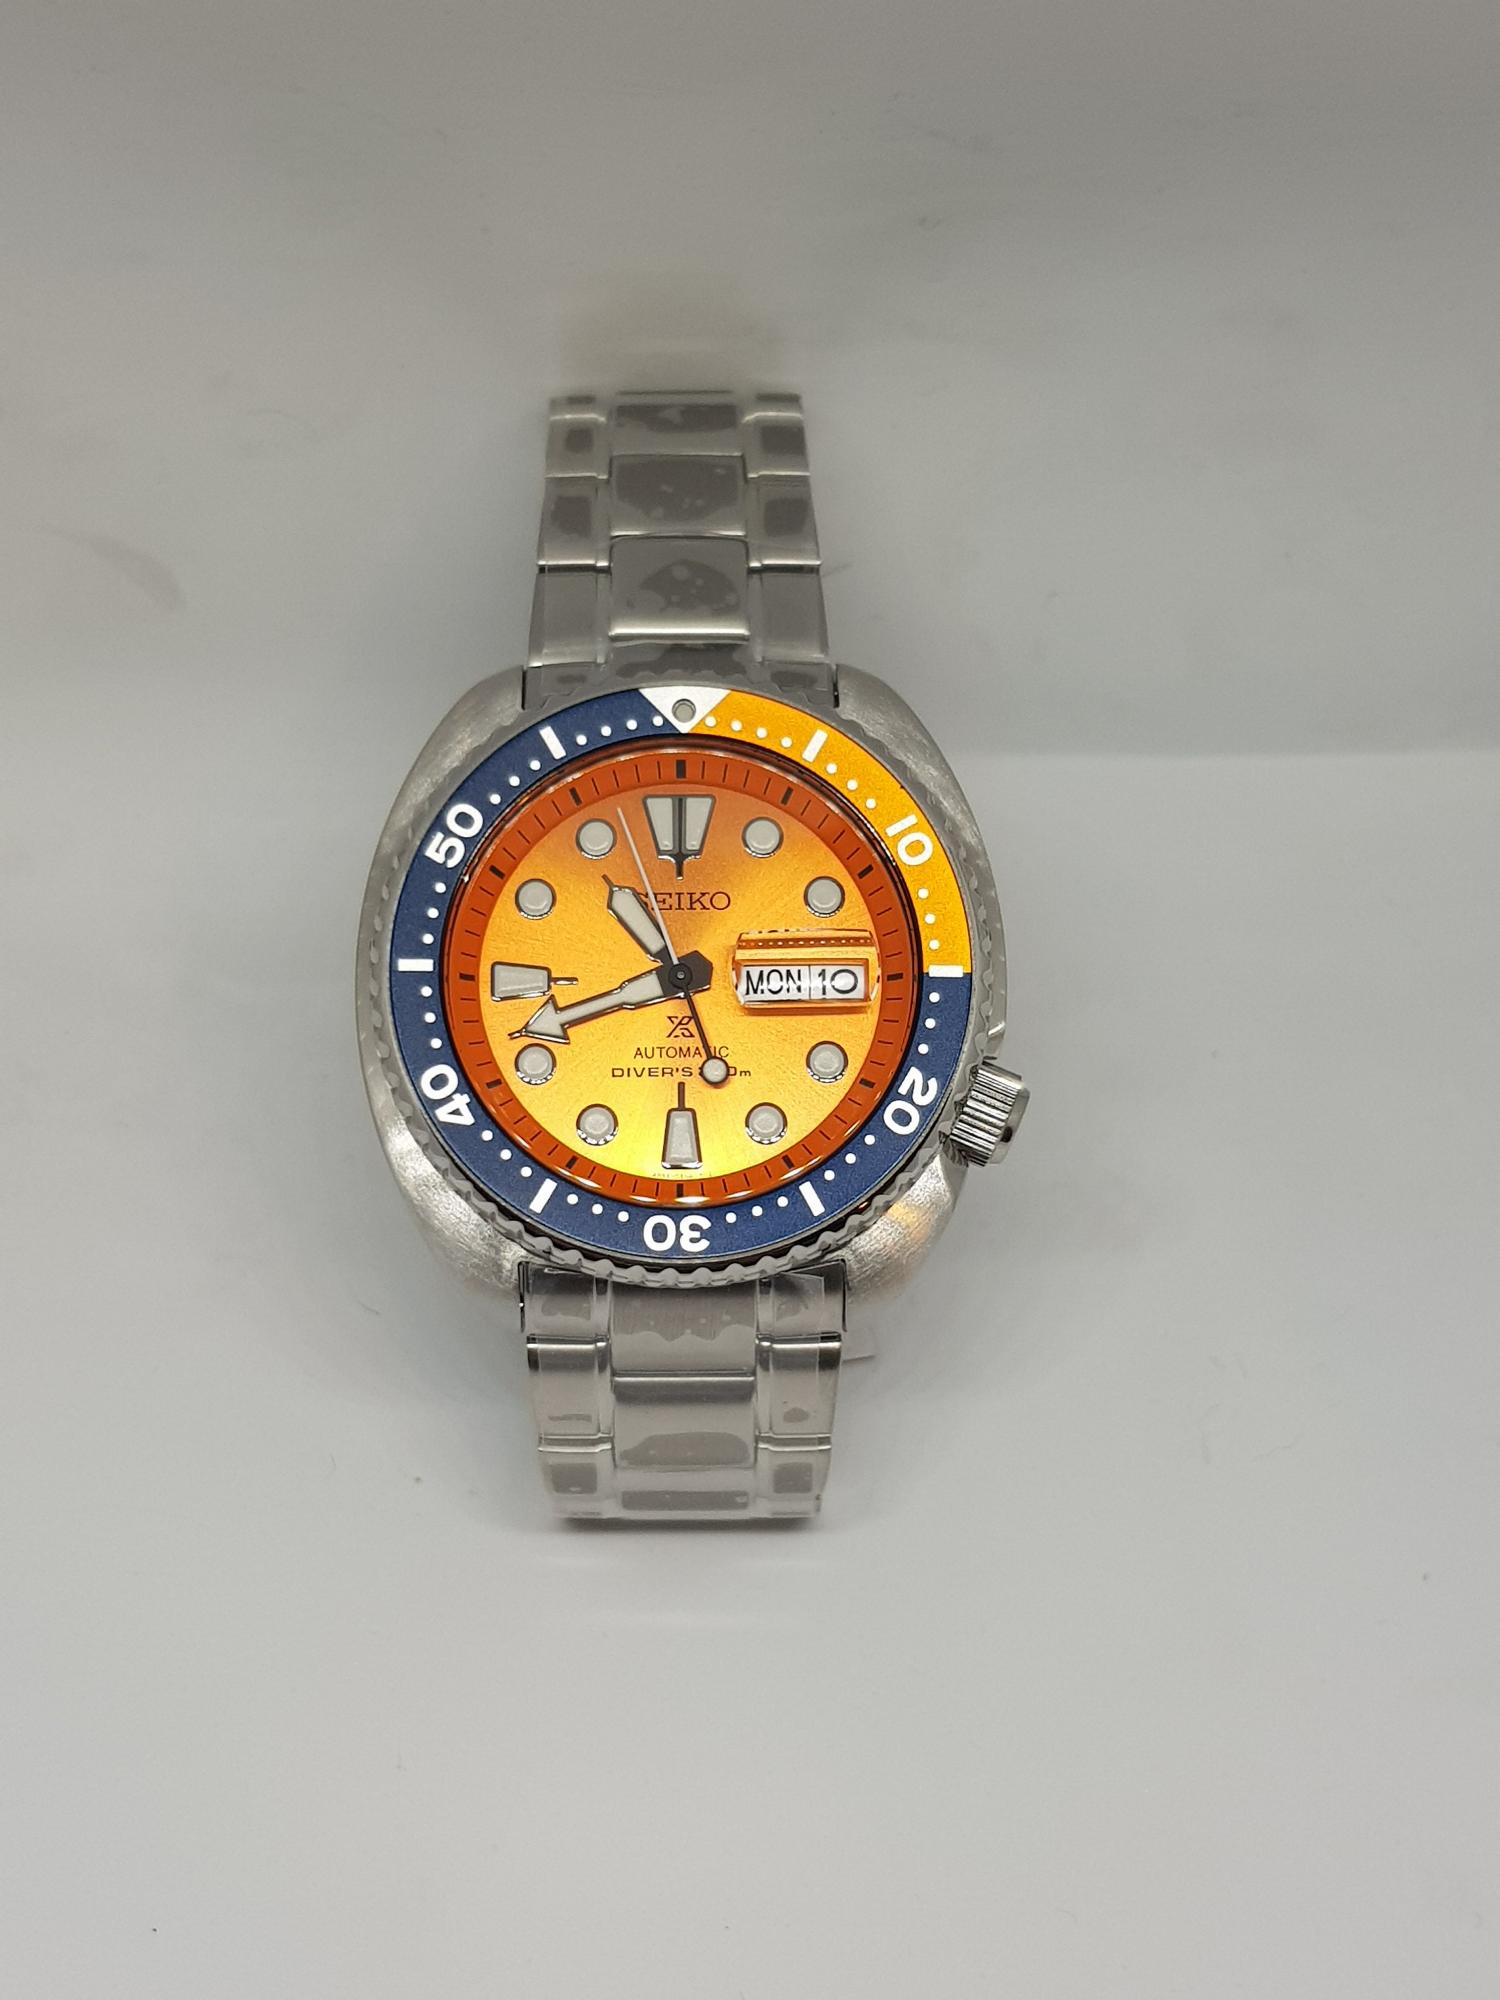 best value 3d5a8 2eb0f Seiko Prospex SRPC95K1 DIVERS WATCH Limited Edition Orange Turtle 200meters  water resist